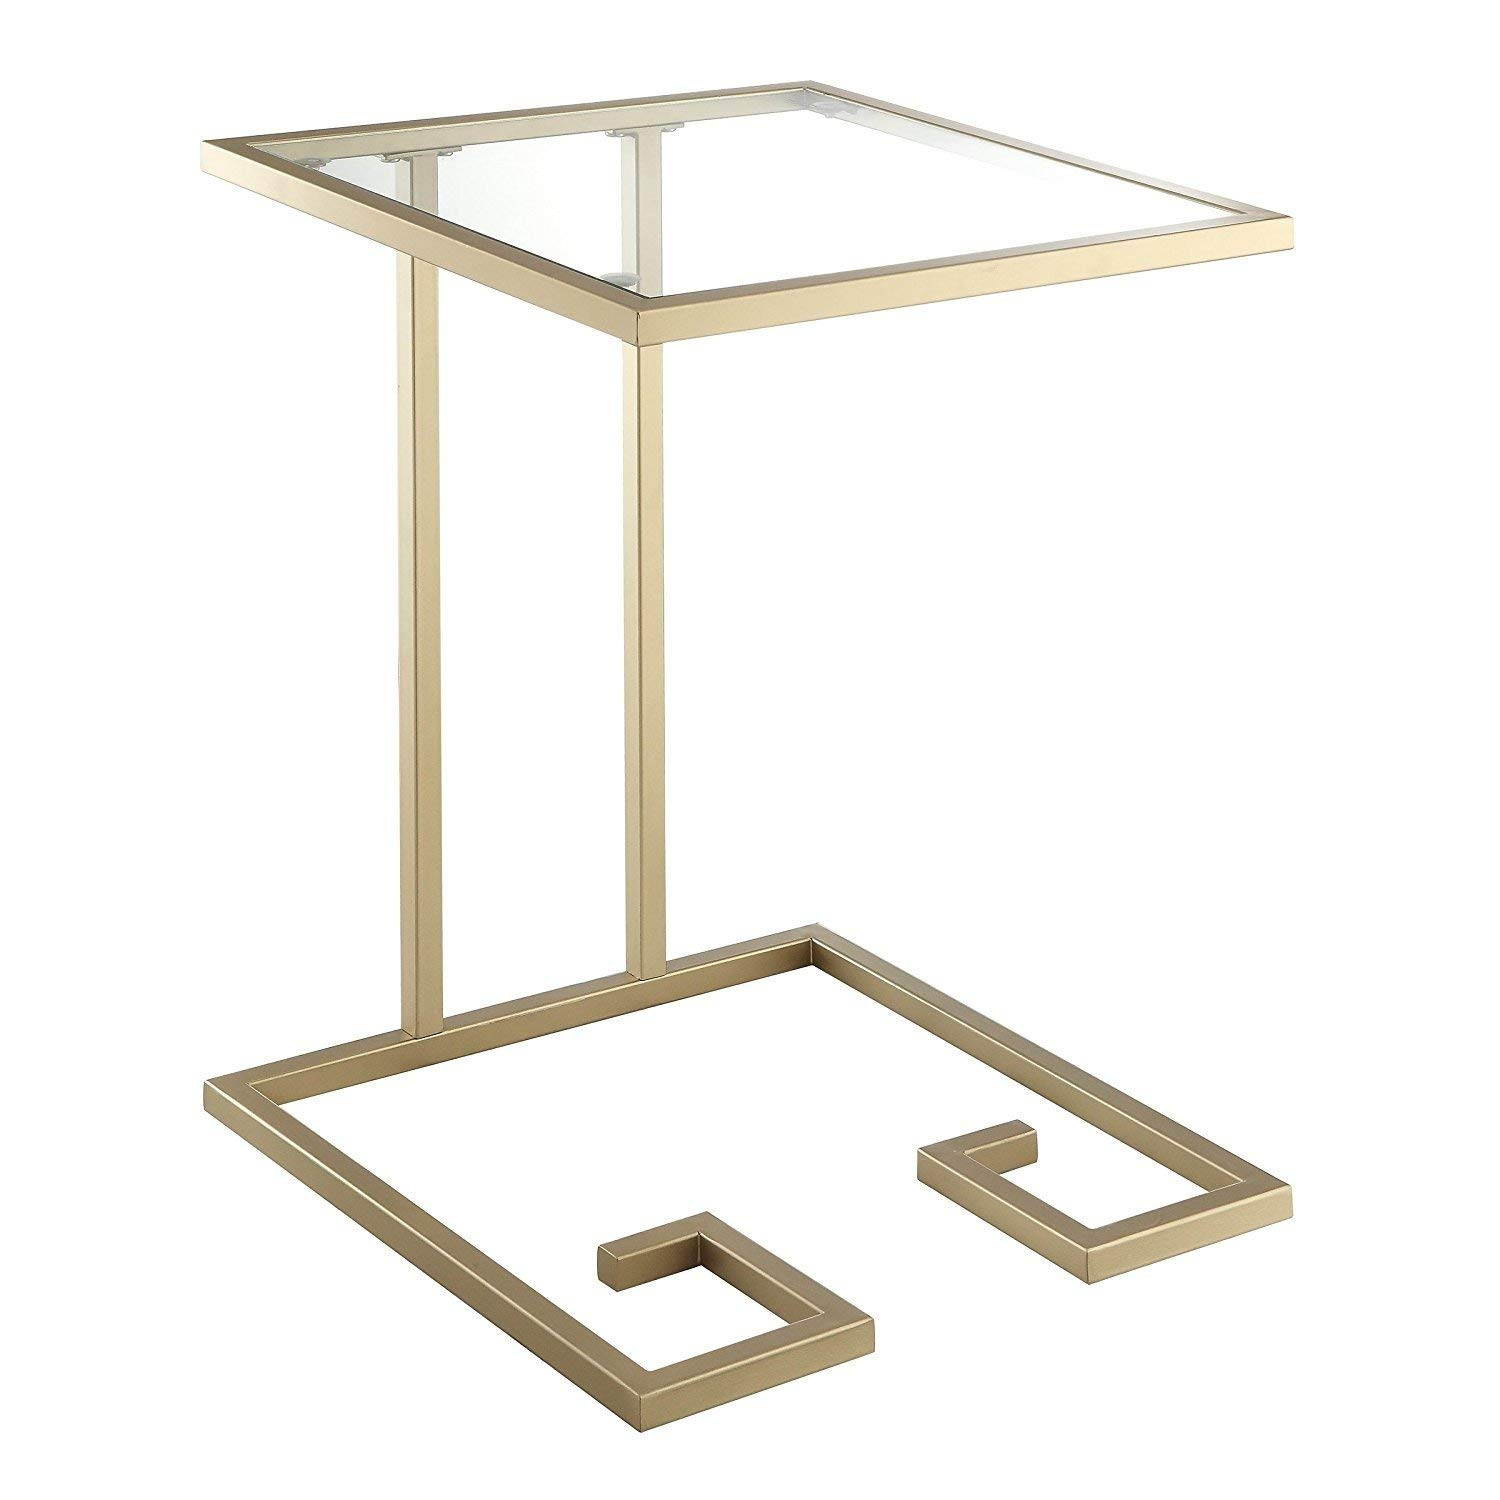 Indoor Multi-Function Accent Table Study Computer Home Office Desk Bedroom Living Room Modern Style End Table Sofa Side Table Coffee Table Gold accent table